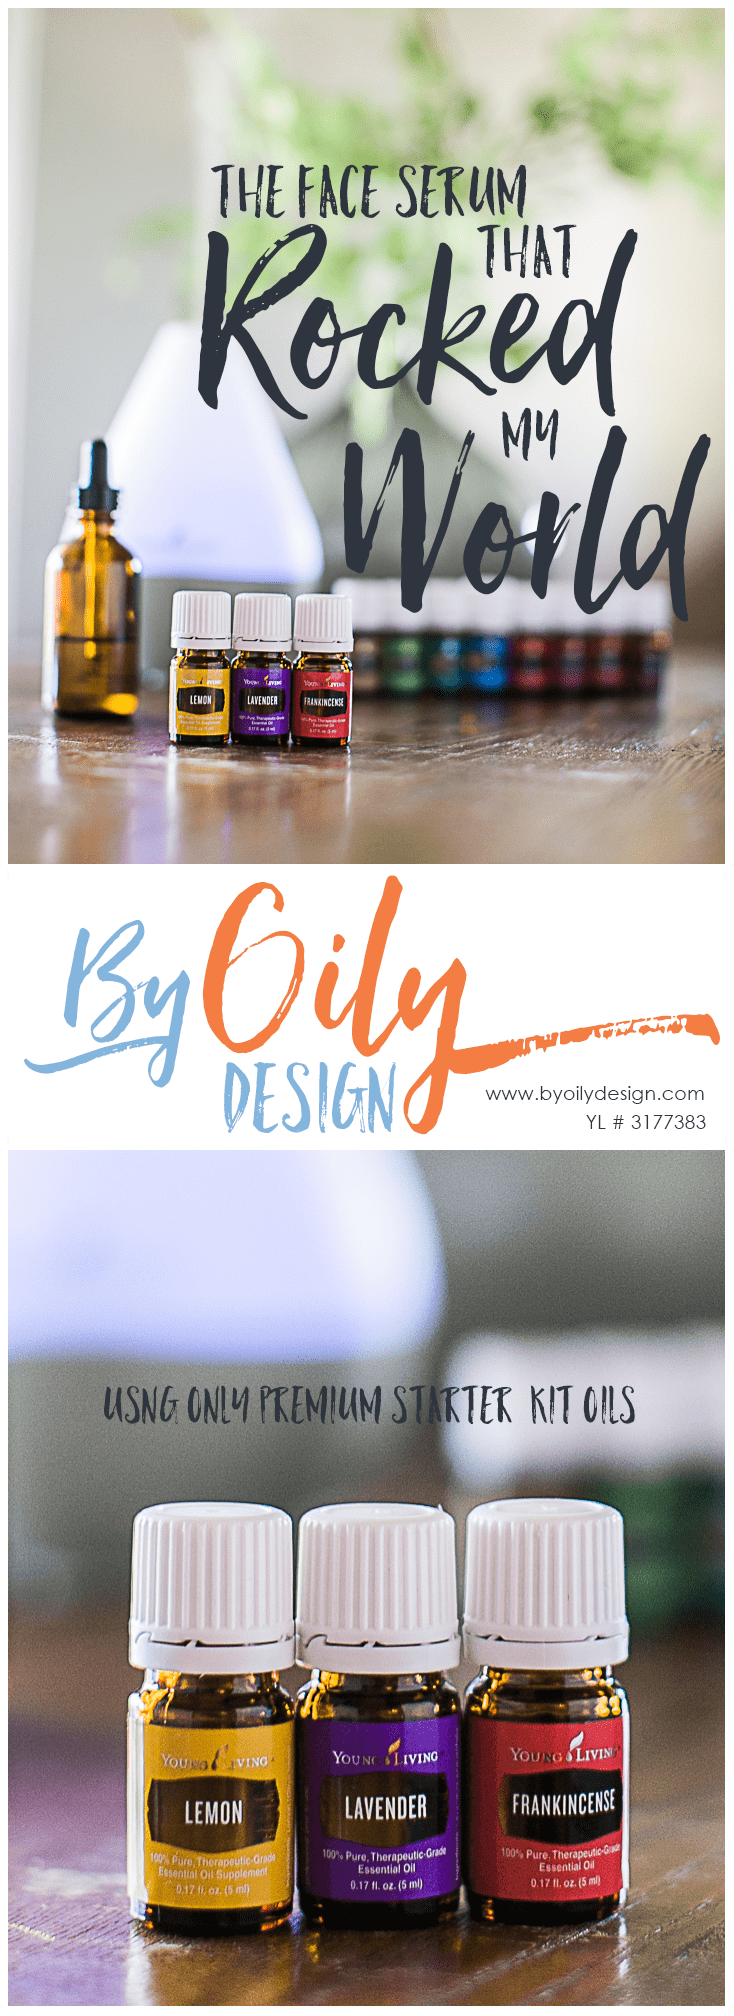 The diy essential oil face serum recipe that rocked my world by essential oil bottles solutioingenieria Gallery